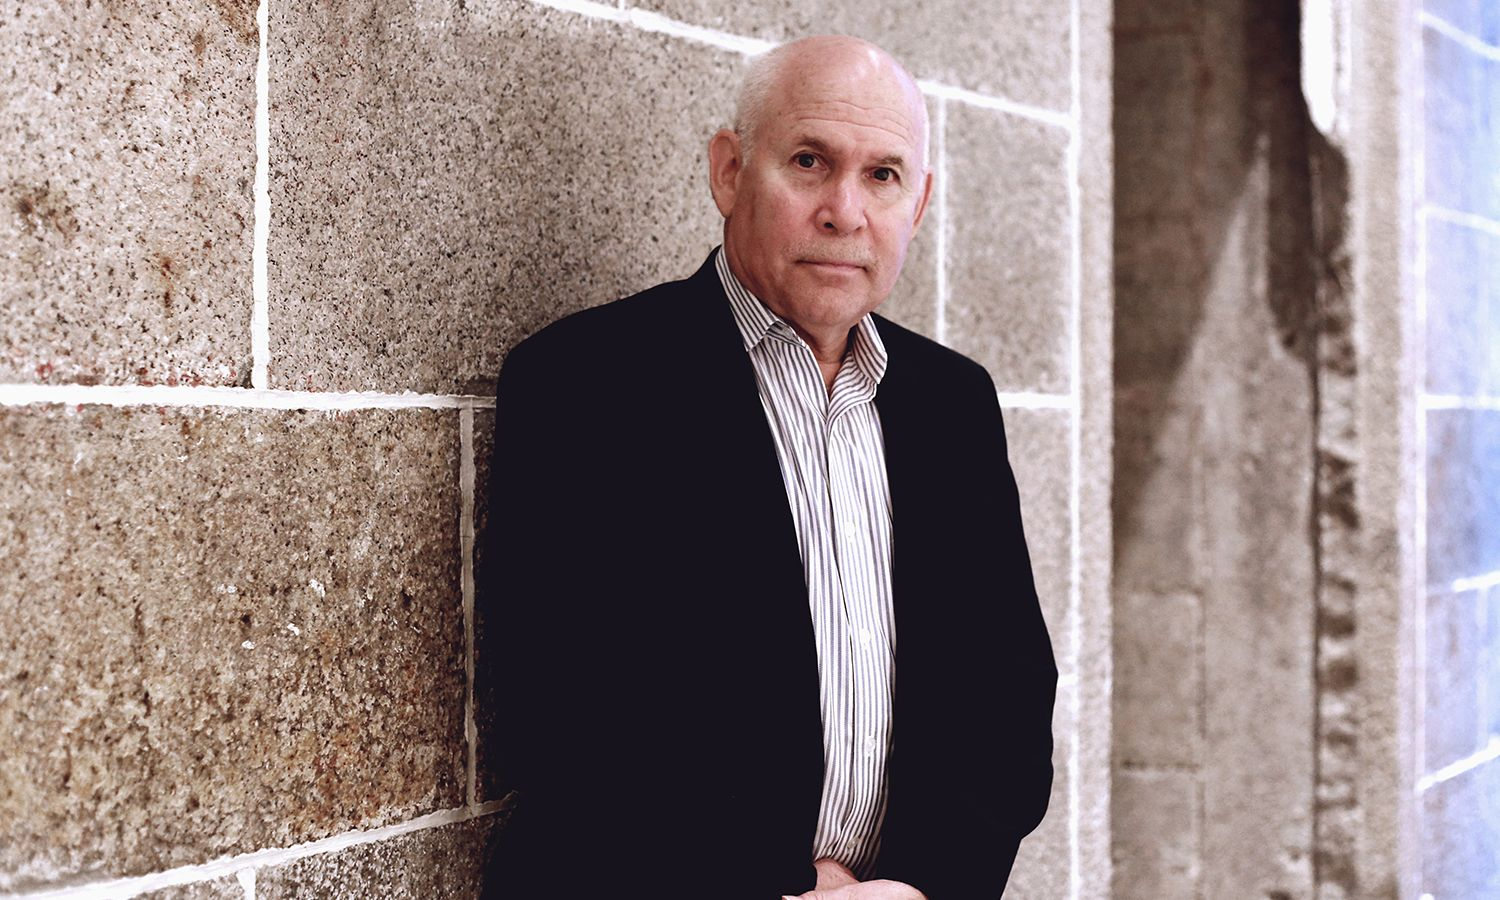 Legendary Photographer Steve McCurry on His Career, Travels and Instagram